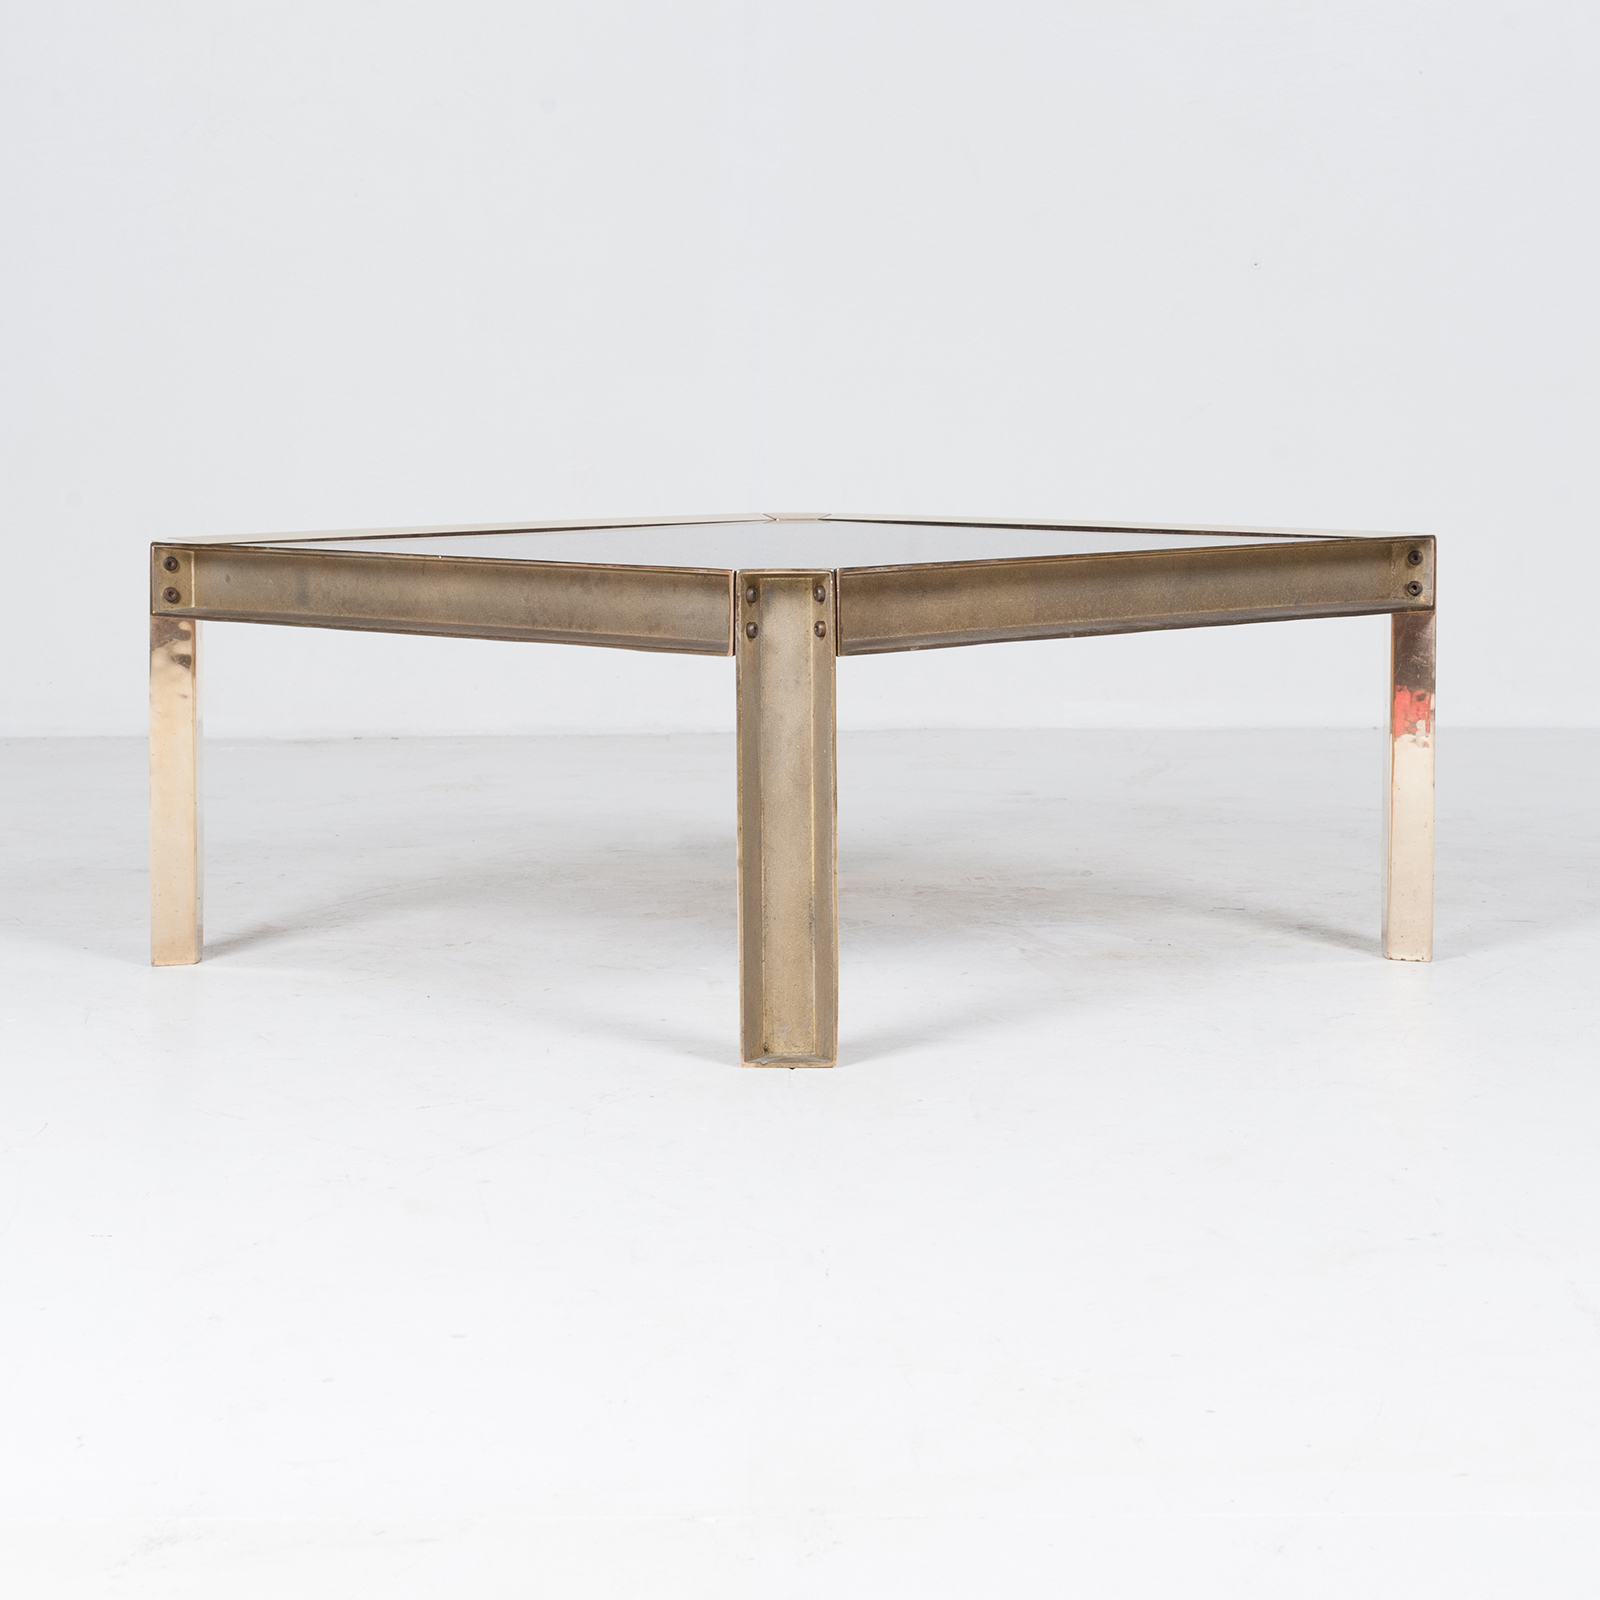 Side Table By Peter Ghyczy With Hollow Cast Brass Frame And Smoked Glass Top, 1970s, The Netherlands 27